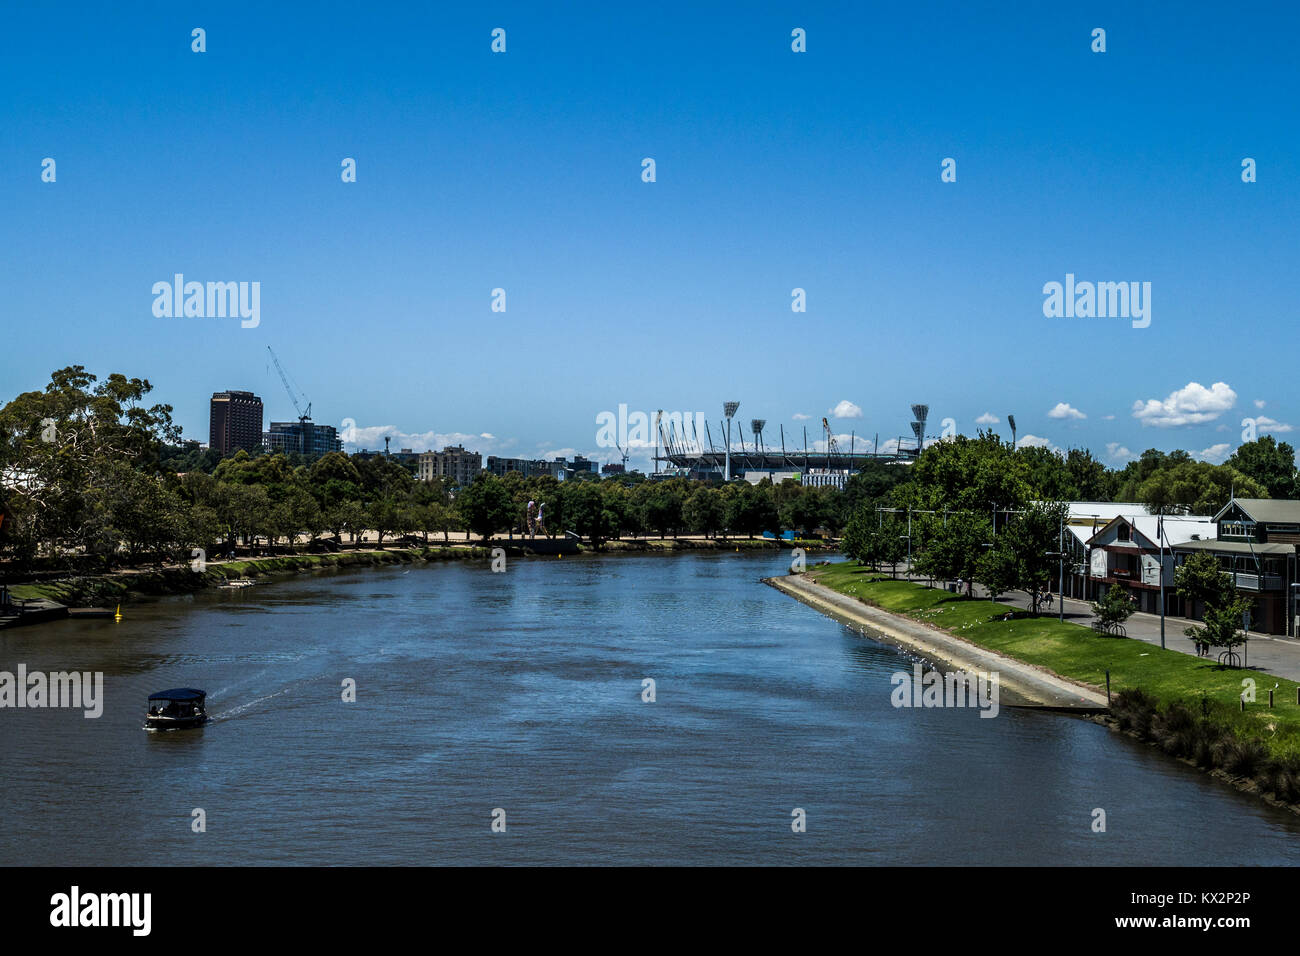 The Yarra river with the Melbourne Cricket Ground (MCG) in the distance, Melbourne, Victoria, Australia. Stock Photo